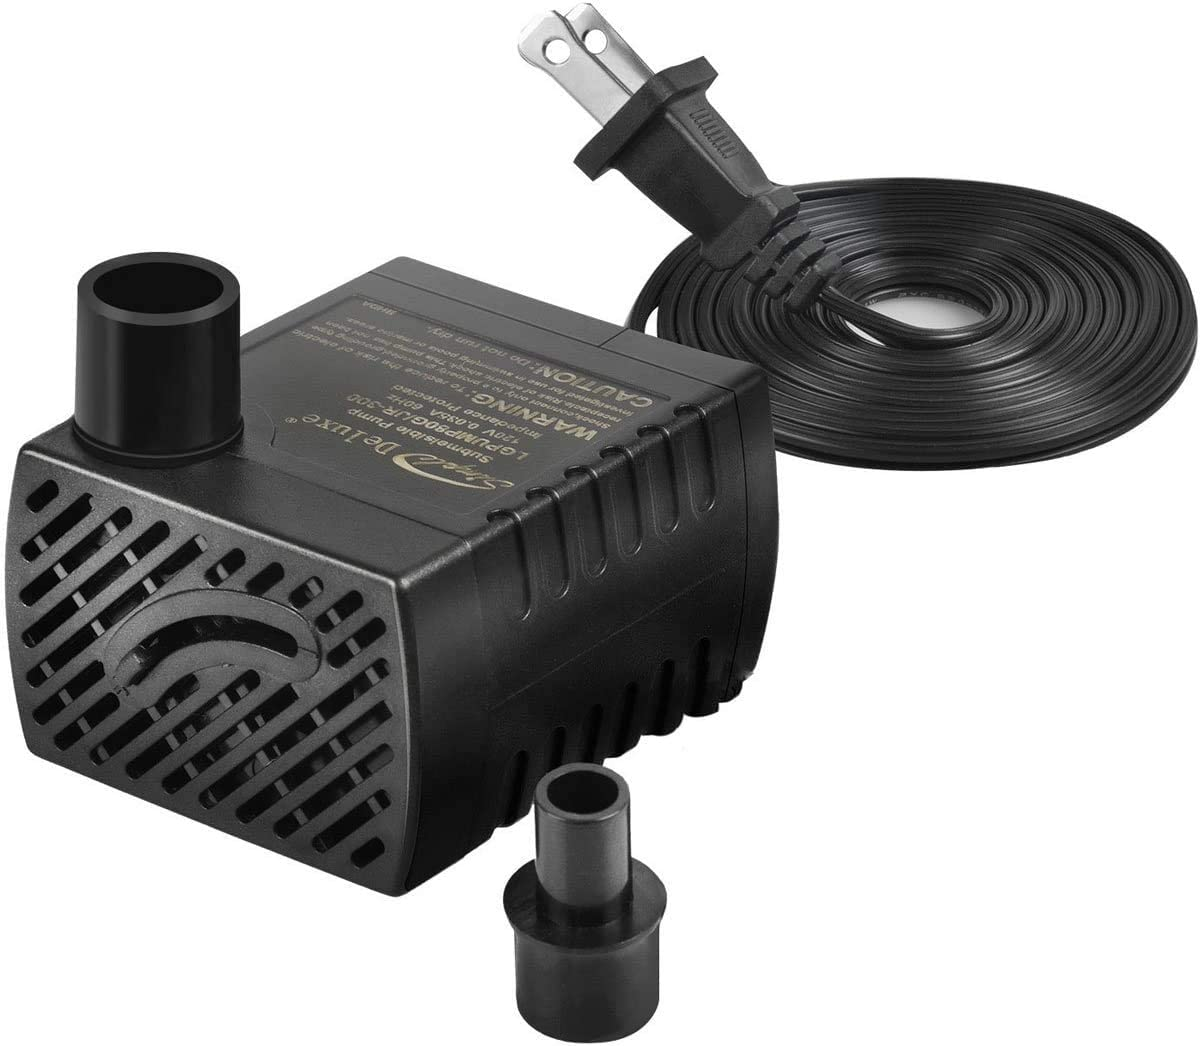 Simple Deluxe LGPUMP80G 80 GPH Submersible 6' Clearance SALE! Limited time! with Co Seasonal Wrap Introduction Pump Water